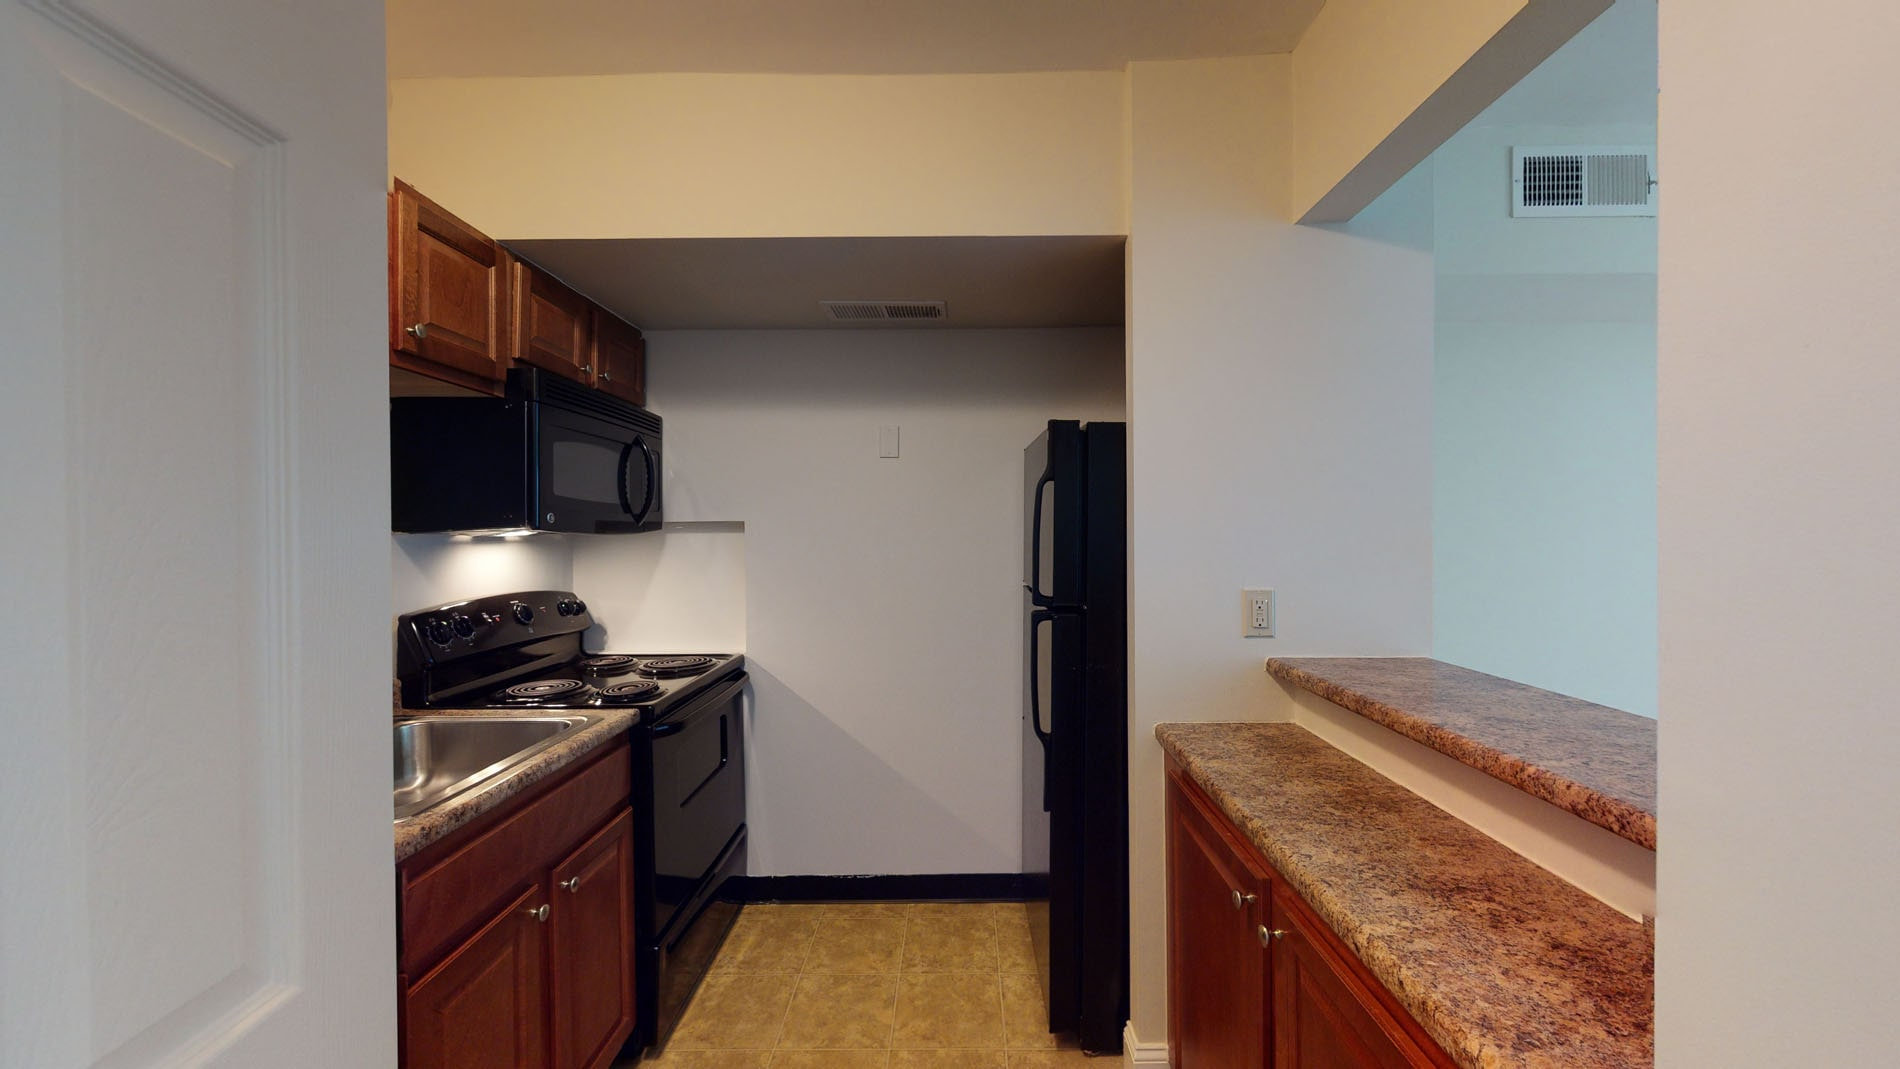 1 Bed, 1 Bath apartment in Norwood for $1,570